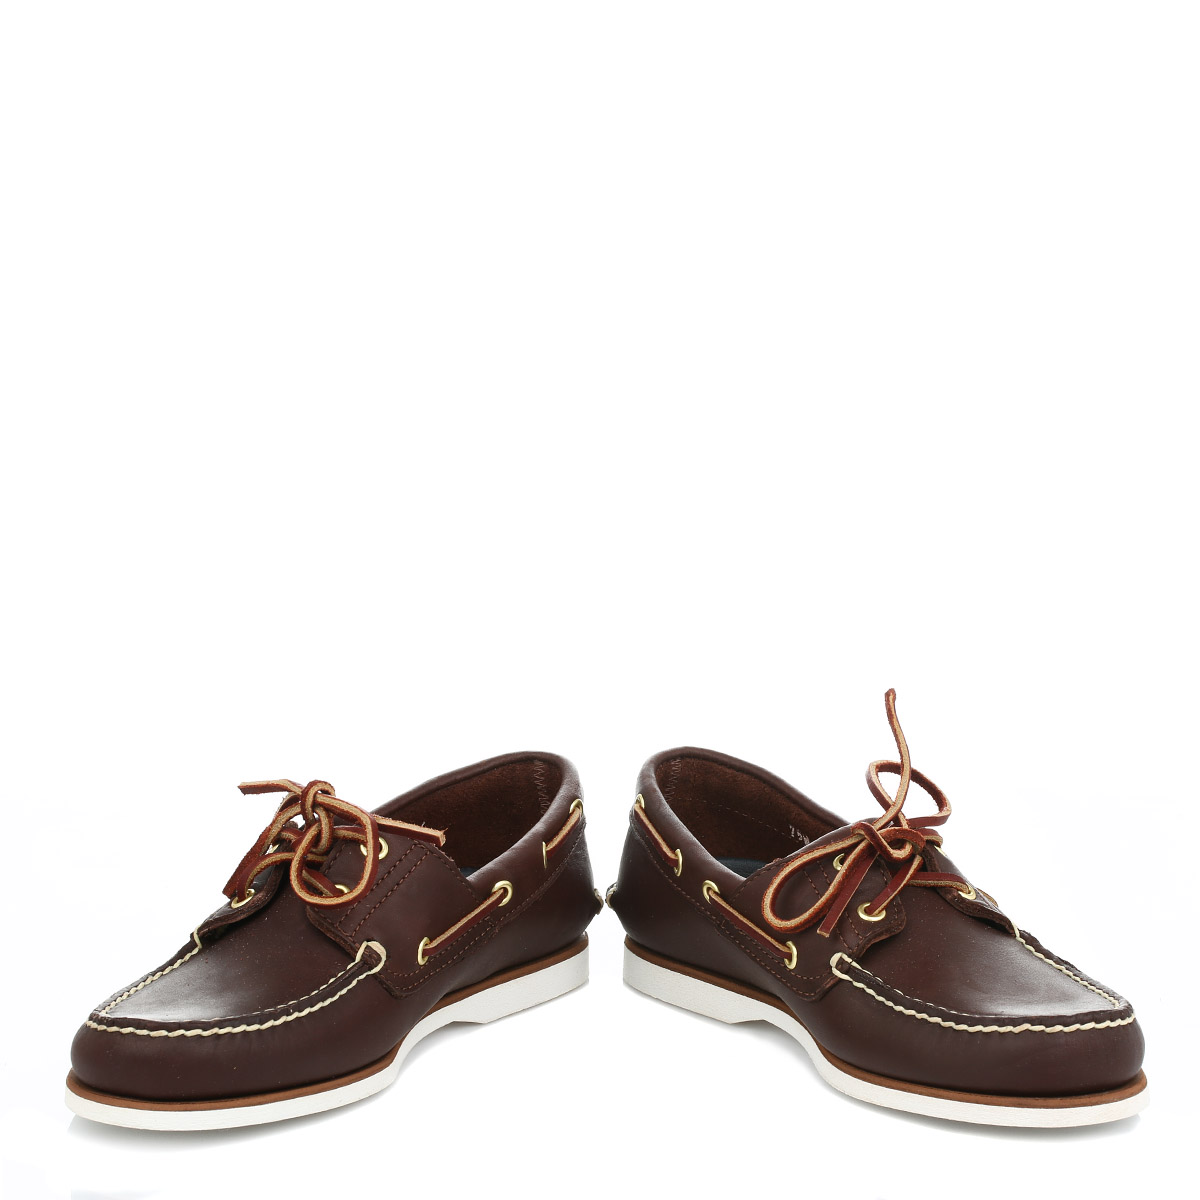 timberland classic brown leather boat casual